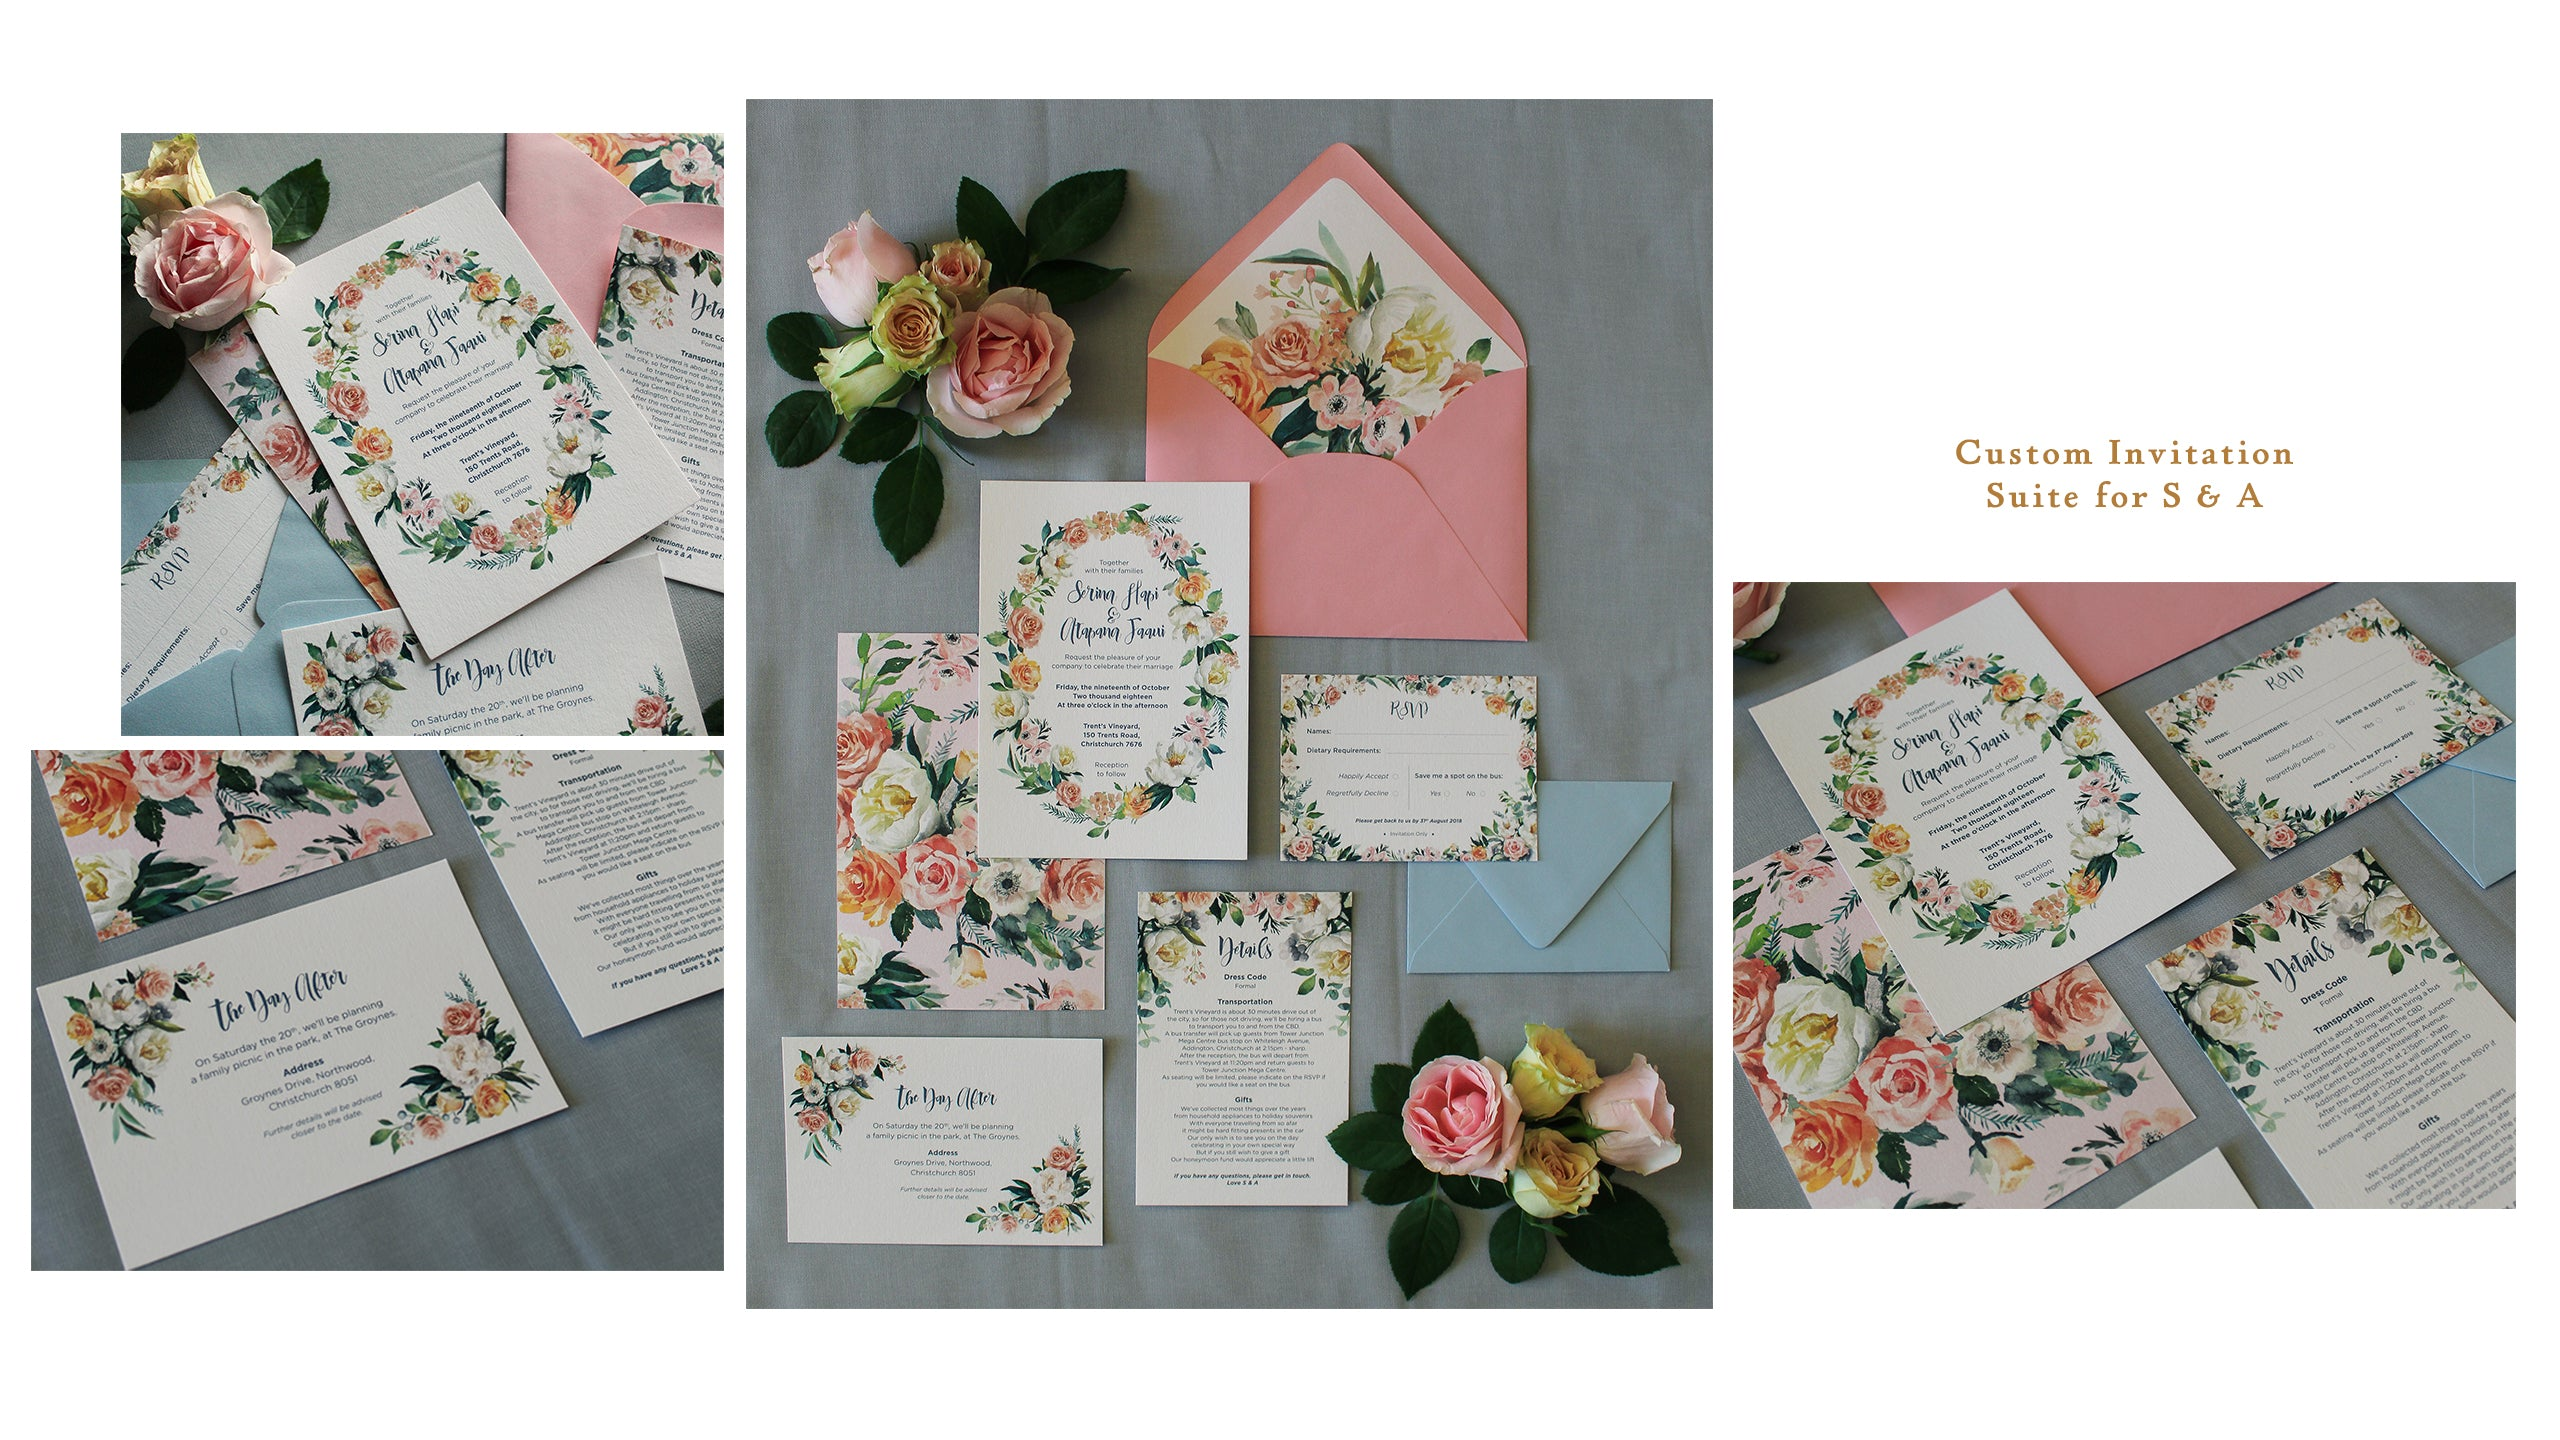 custom wedding invitation suite with watercolor floral wreaths